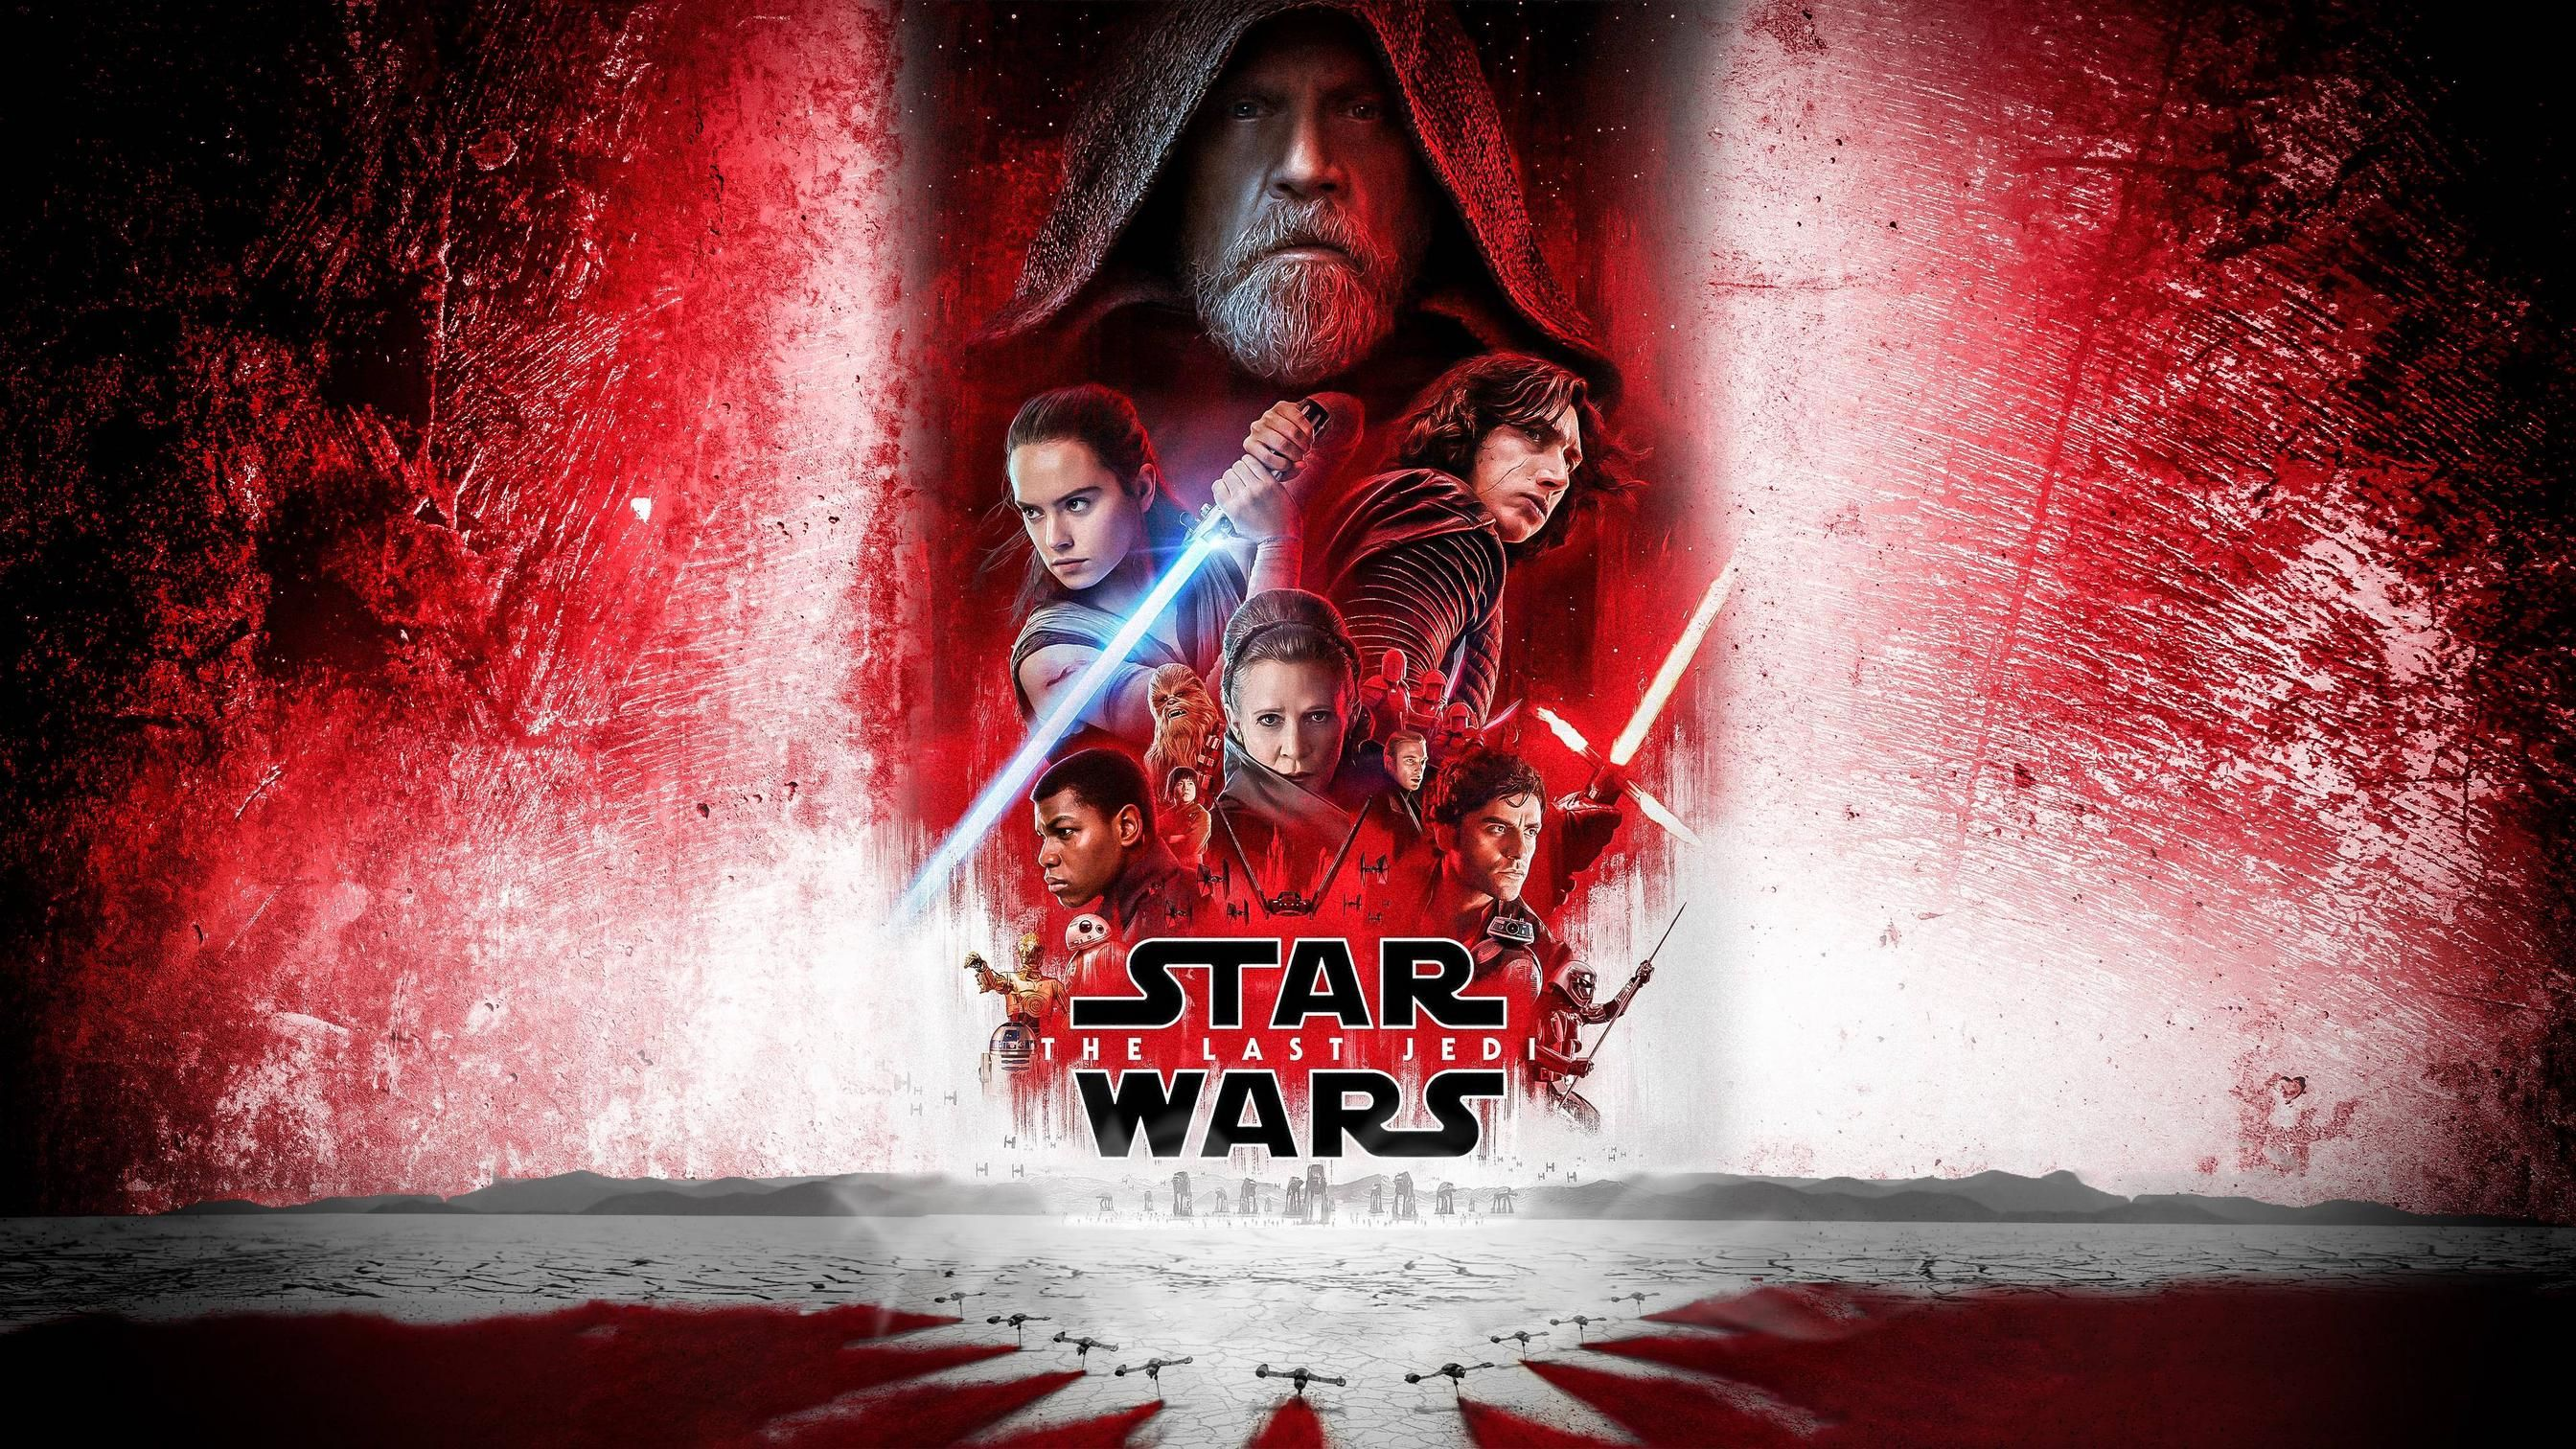 The Last Jedi Poster 4k From R Starwars Star Wars Awesome Star Wars Watch Star Wars Battlefront